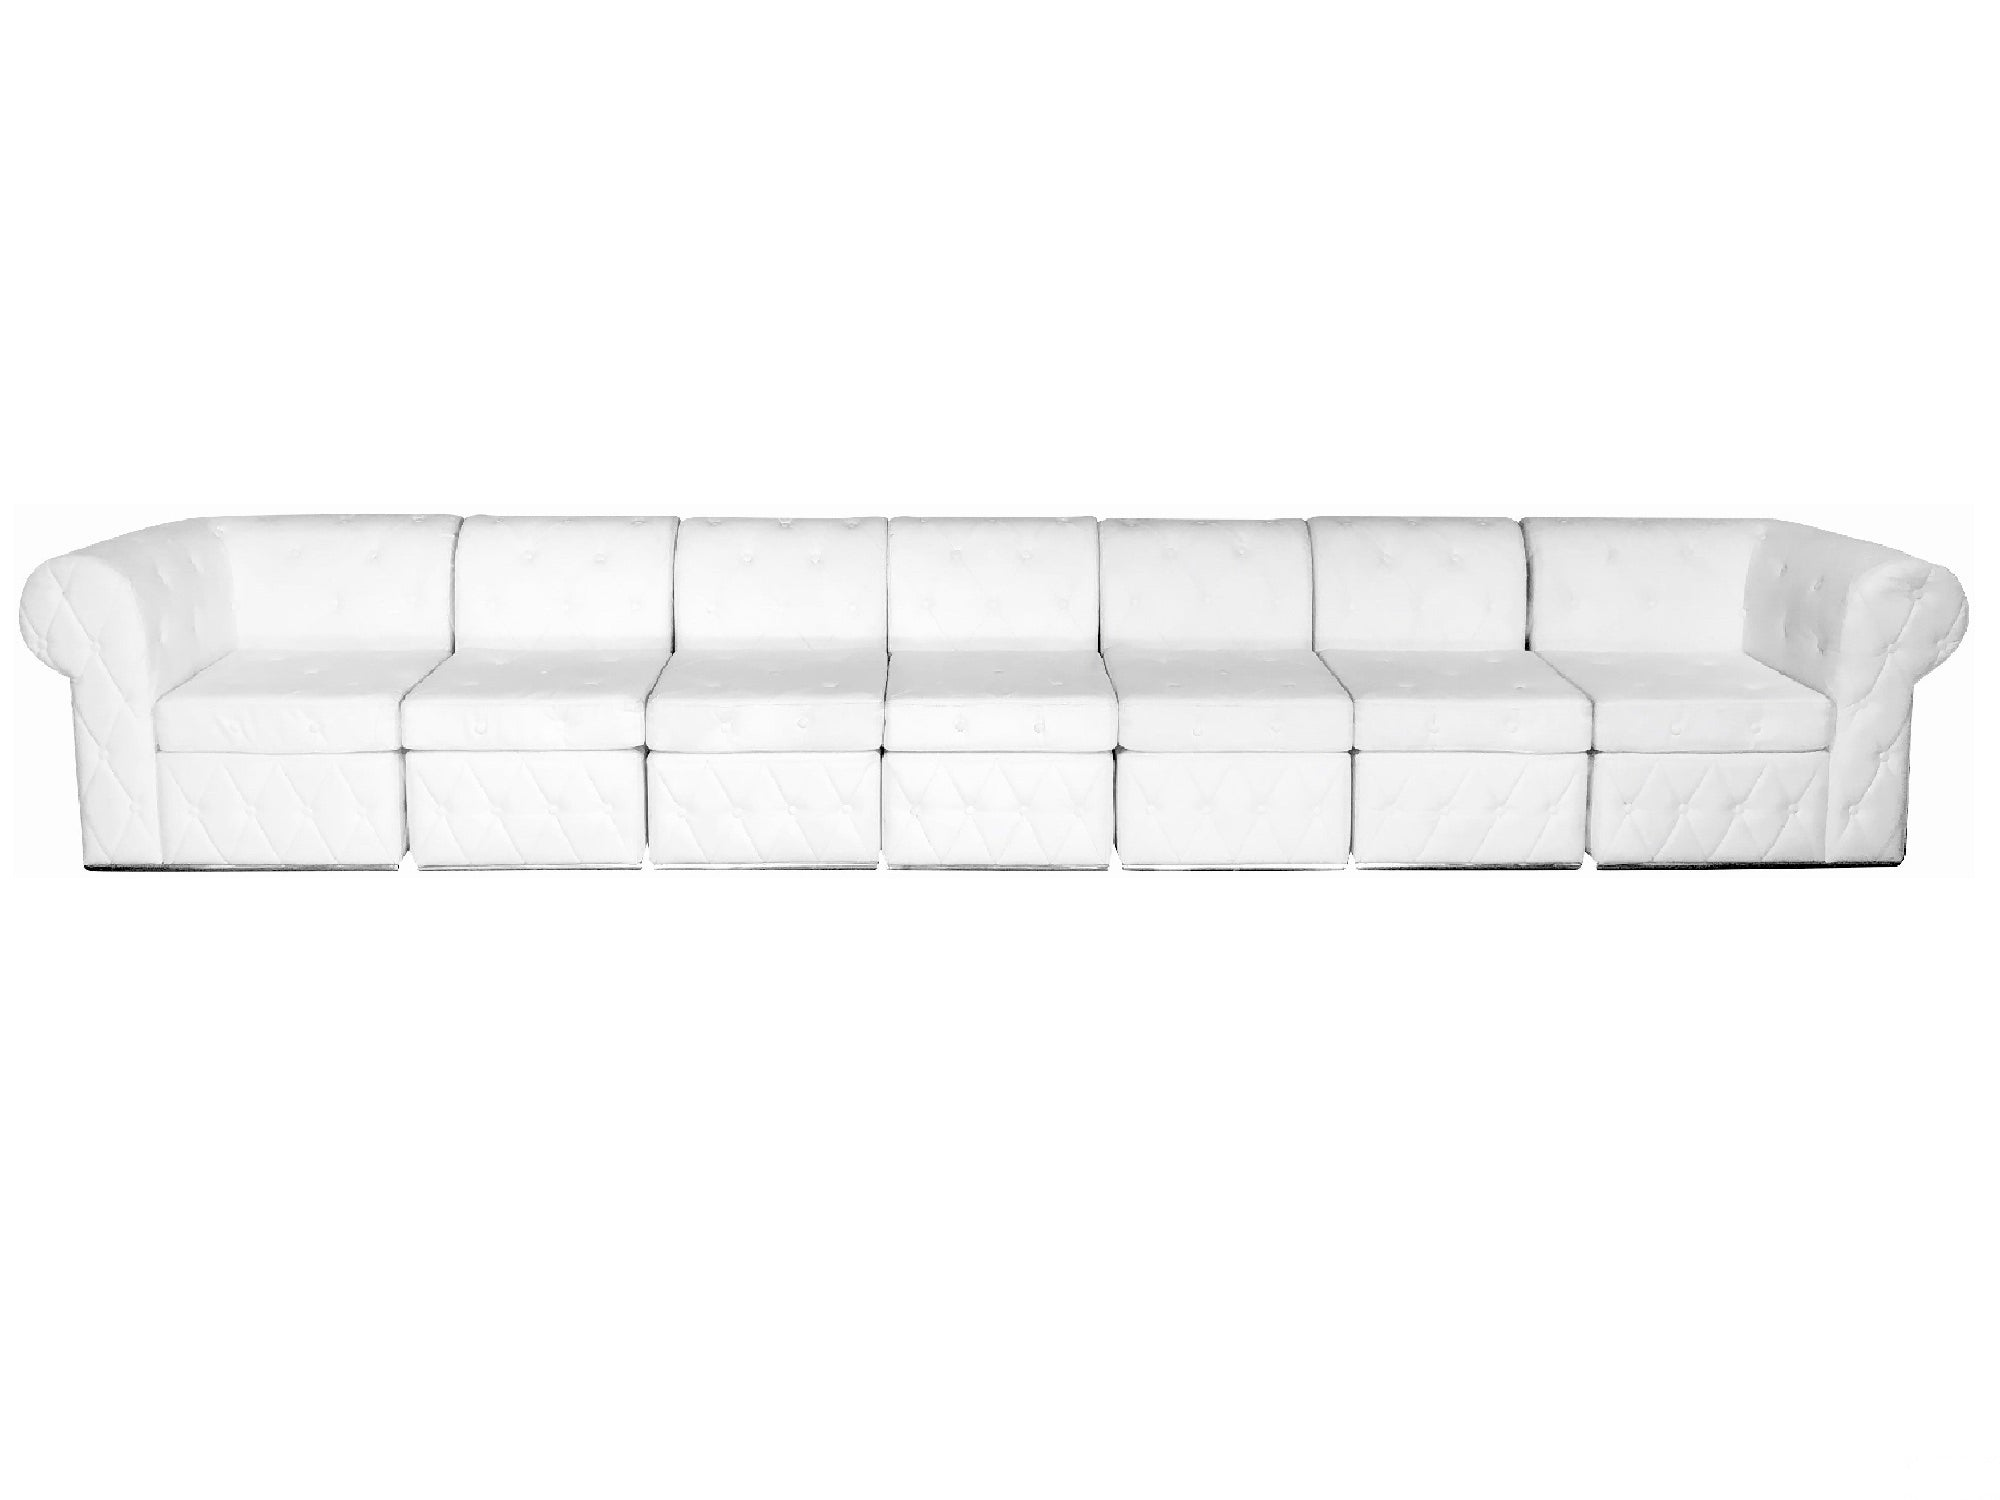 VENETIAN 7PC LONG SOFA